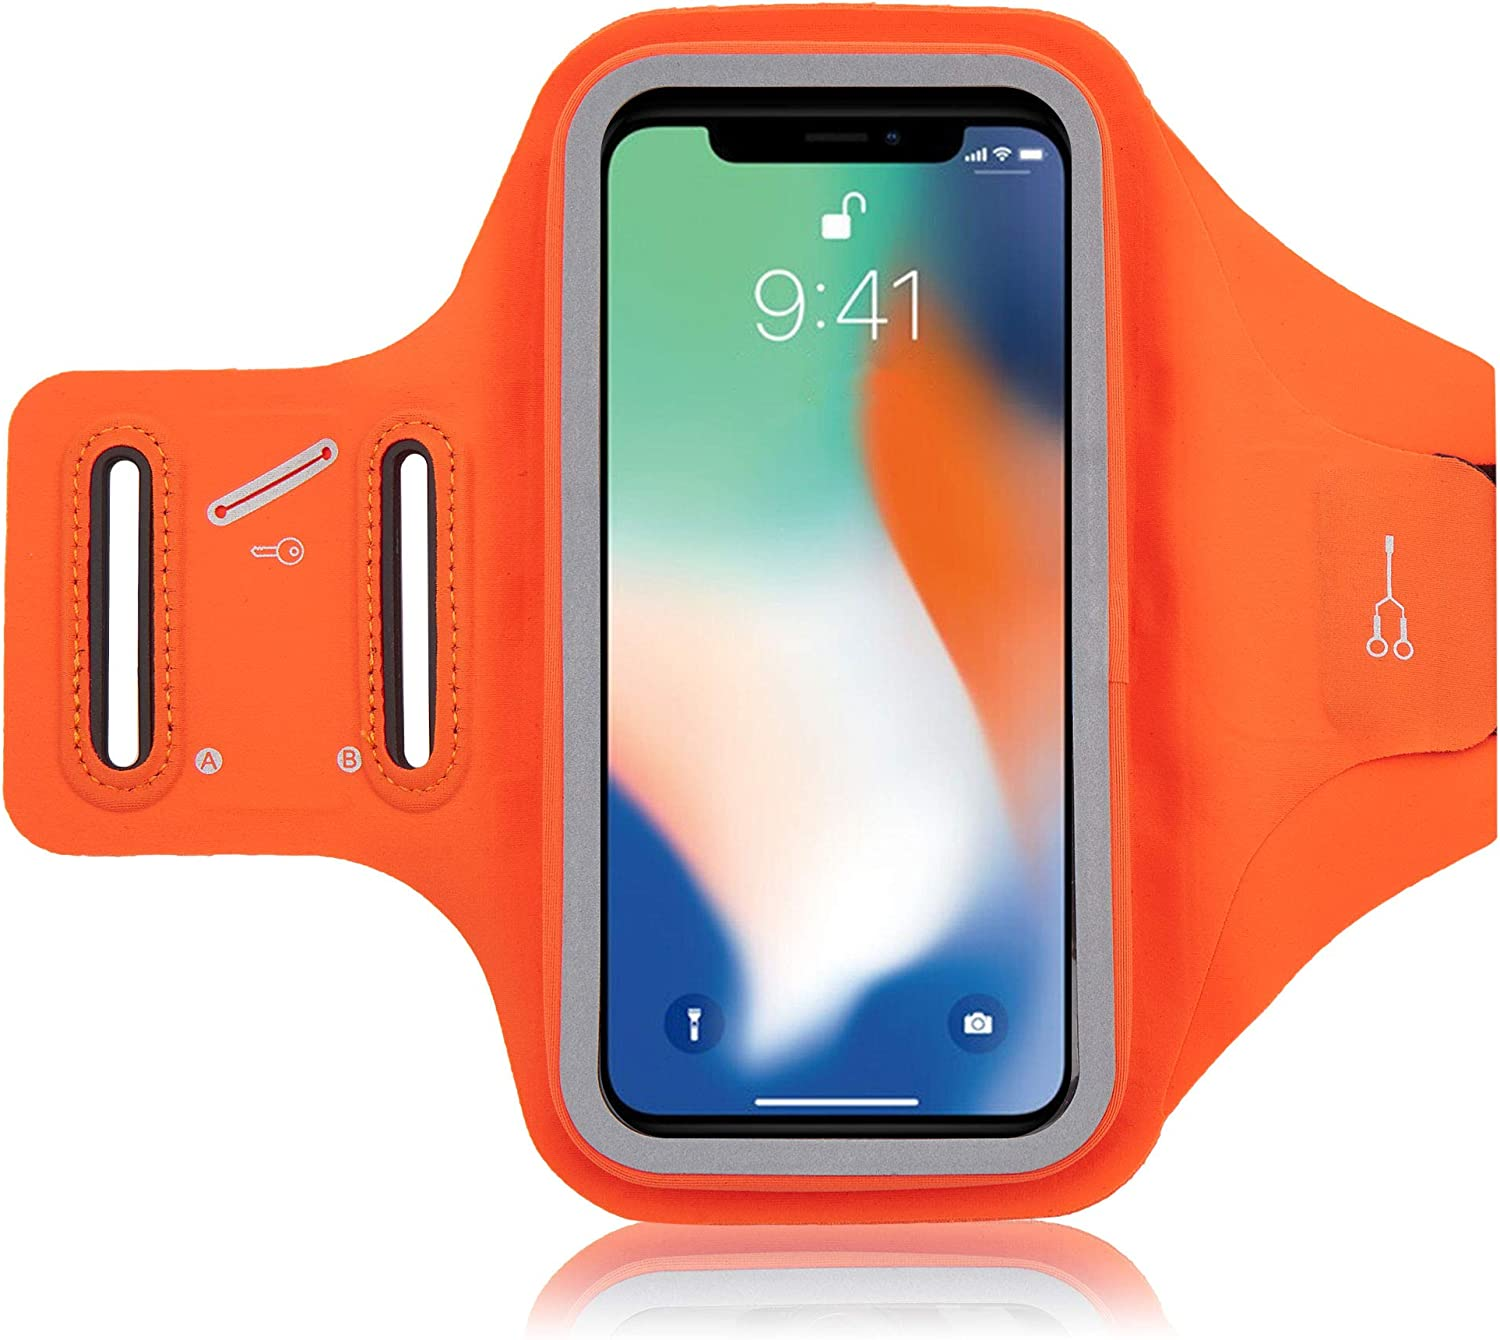 Water Resistant Armband Phone Holder,Cell Phone Running arm Band for iPhone 12 Pro 11 Pro Max X XR XS 8 7 6 6s Plus,Galaxy S20 S10 S9 Plus, for Outdoor Sports,Cycling Gym (Orange)